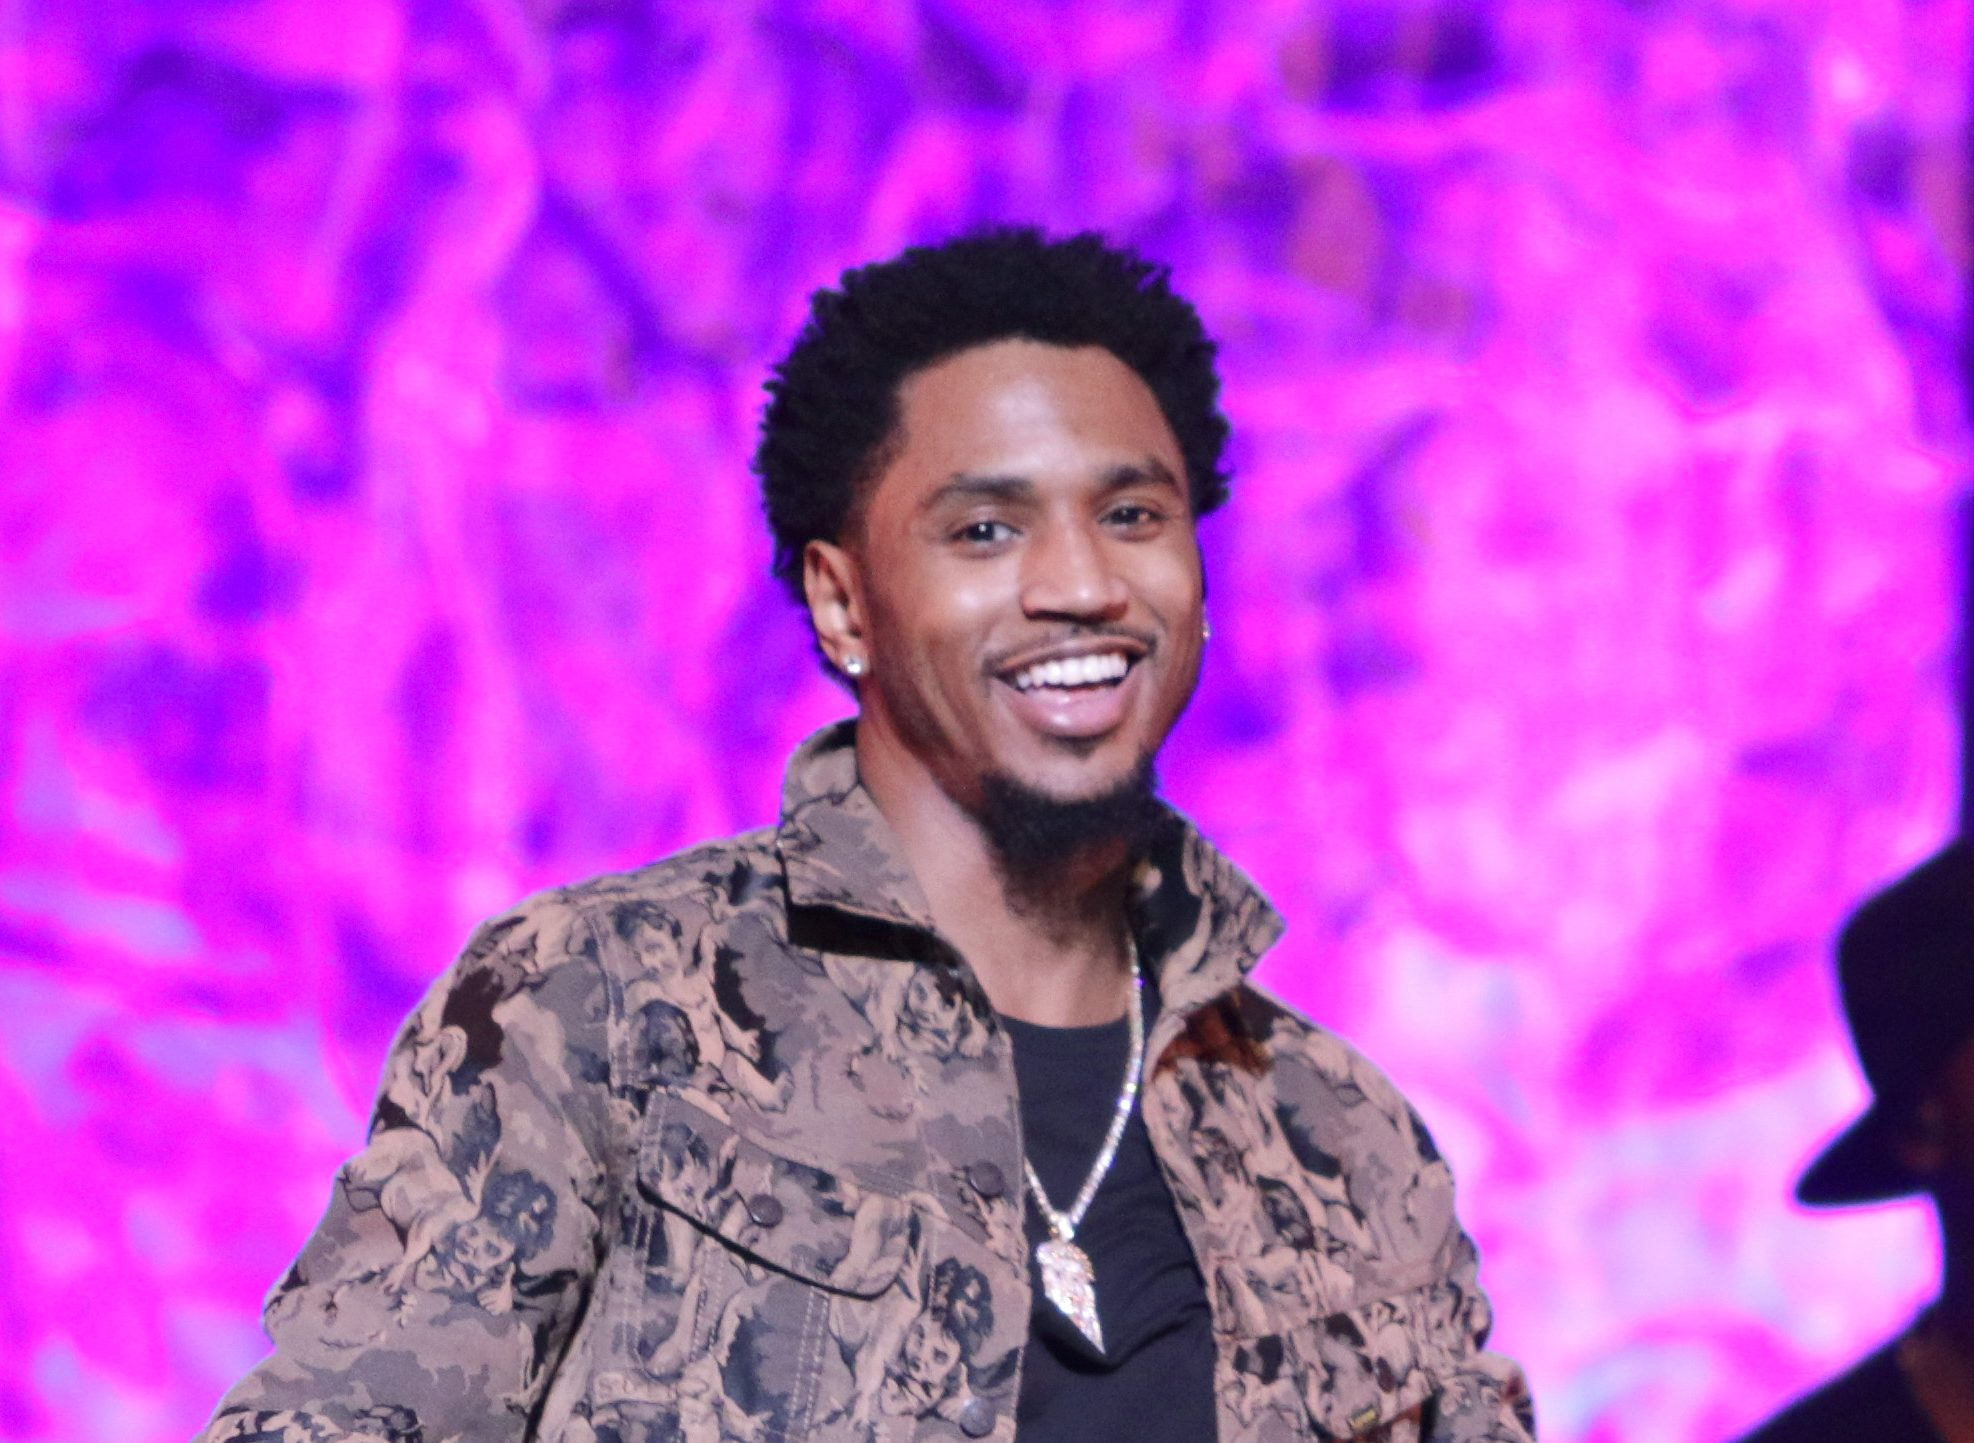 Trey Songz Performs At The Novo By Microsoft